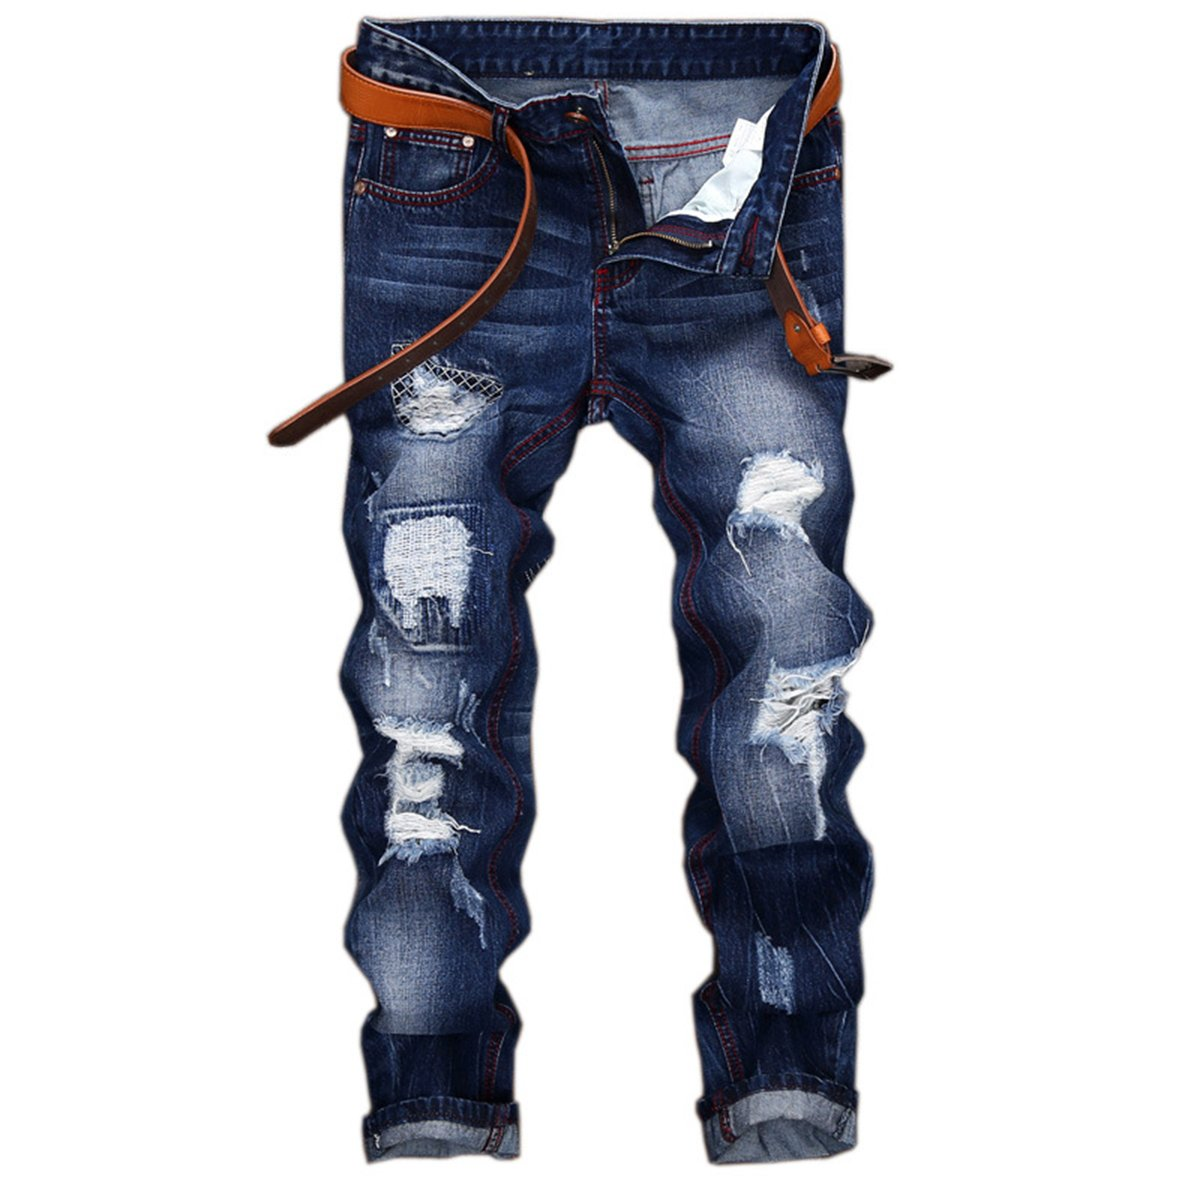 48fc9f97e7c 96%Cotton/4%Polyester Imported Zipper closure. Machine Wash Please choose  correct US size when you place an order. Destroyed jeans, Distressed jeans,  ...